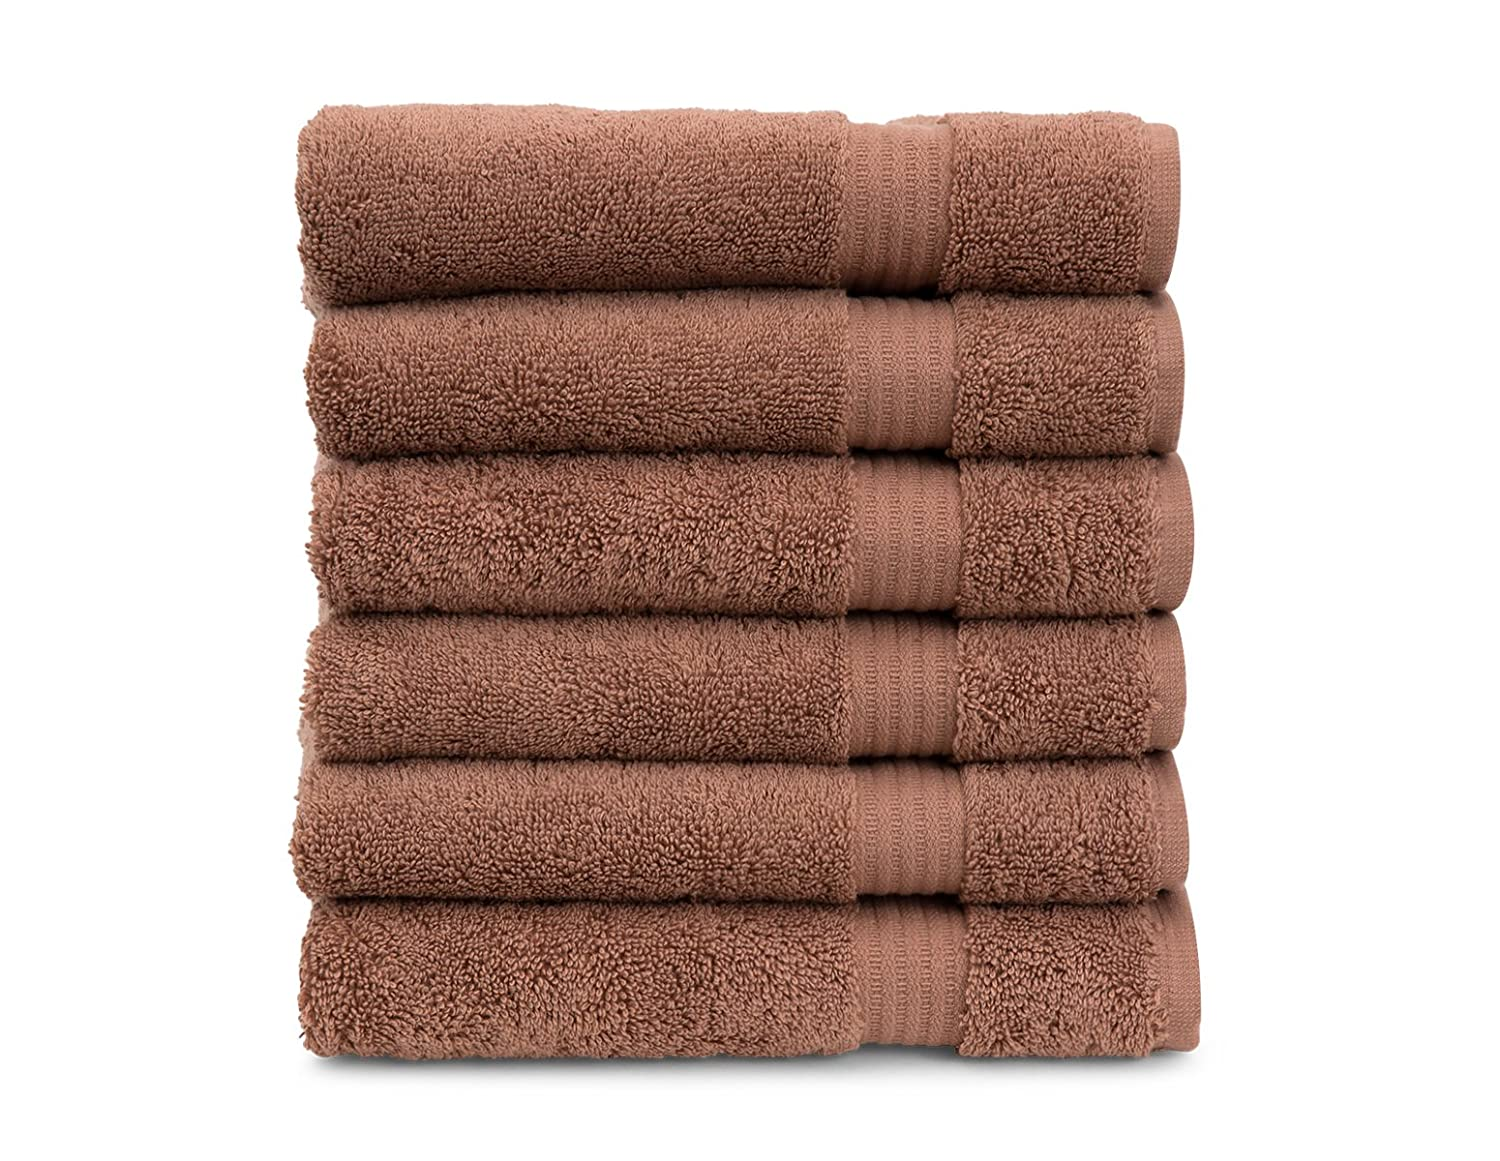 TowelSelections Blossom Collection Soft Towels 100/% Turkish Cotton Lead 6 Washcloths BLS-6WTW-LD